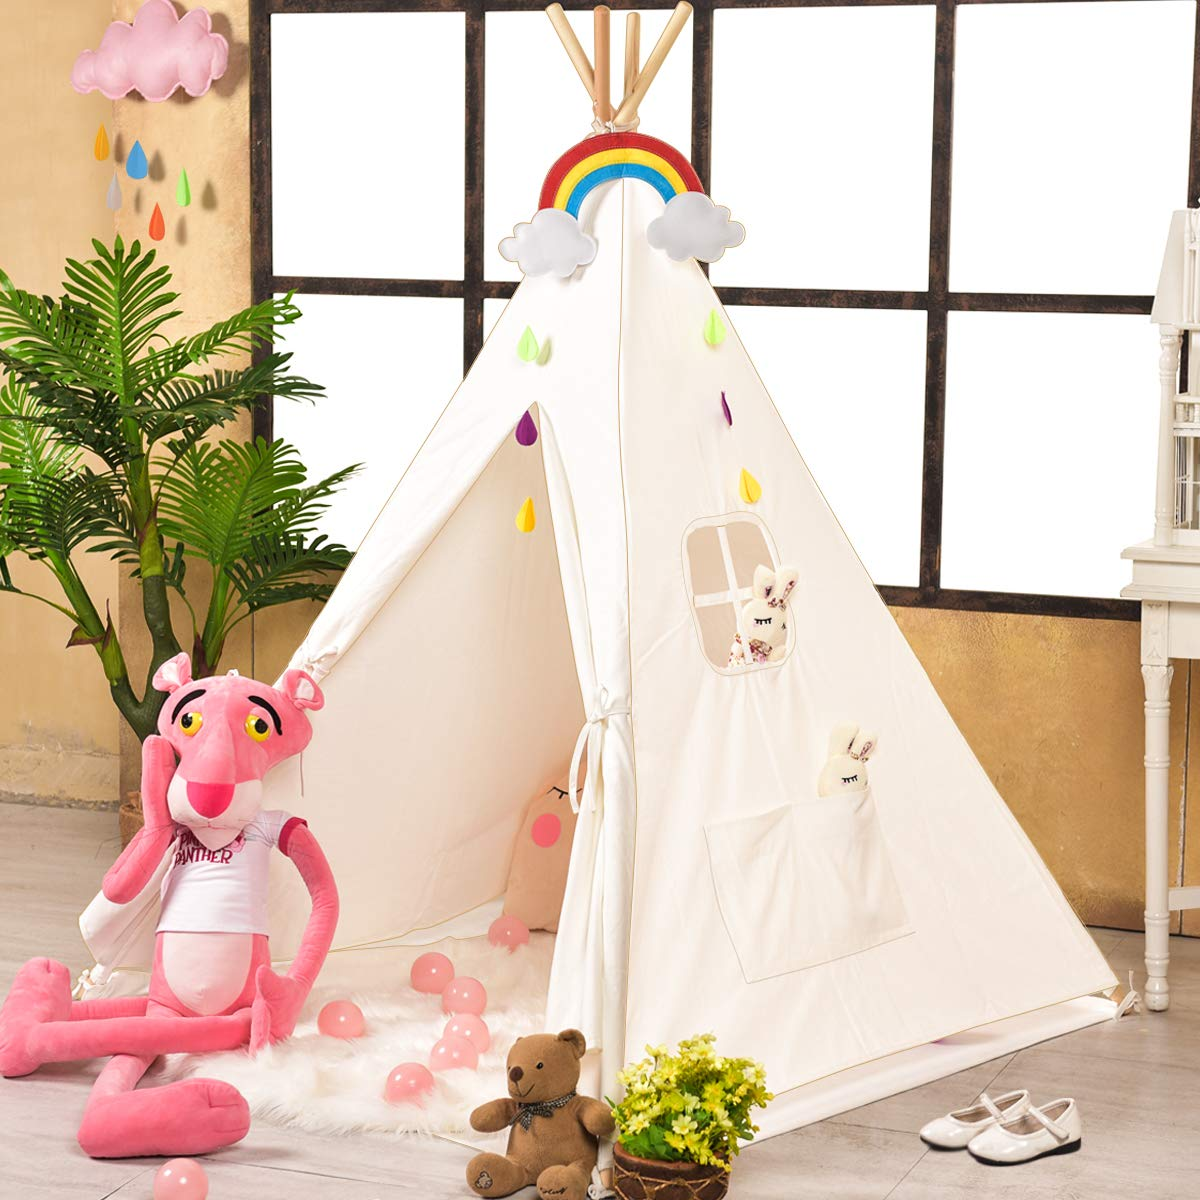 Sumbababy Teepee Tent for Kids, Girls Play Tents for Girl or Boy, Foldable Children Playhouse Toys for Baby Indoor and Outdoor Playing,100% Natural Cotton Canvas Child Tipi with Carry Bag